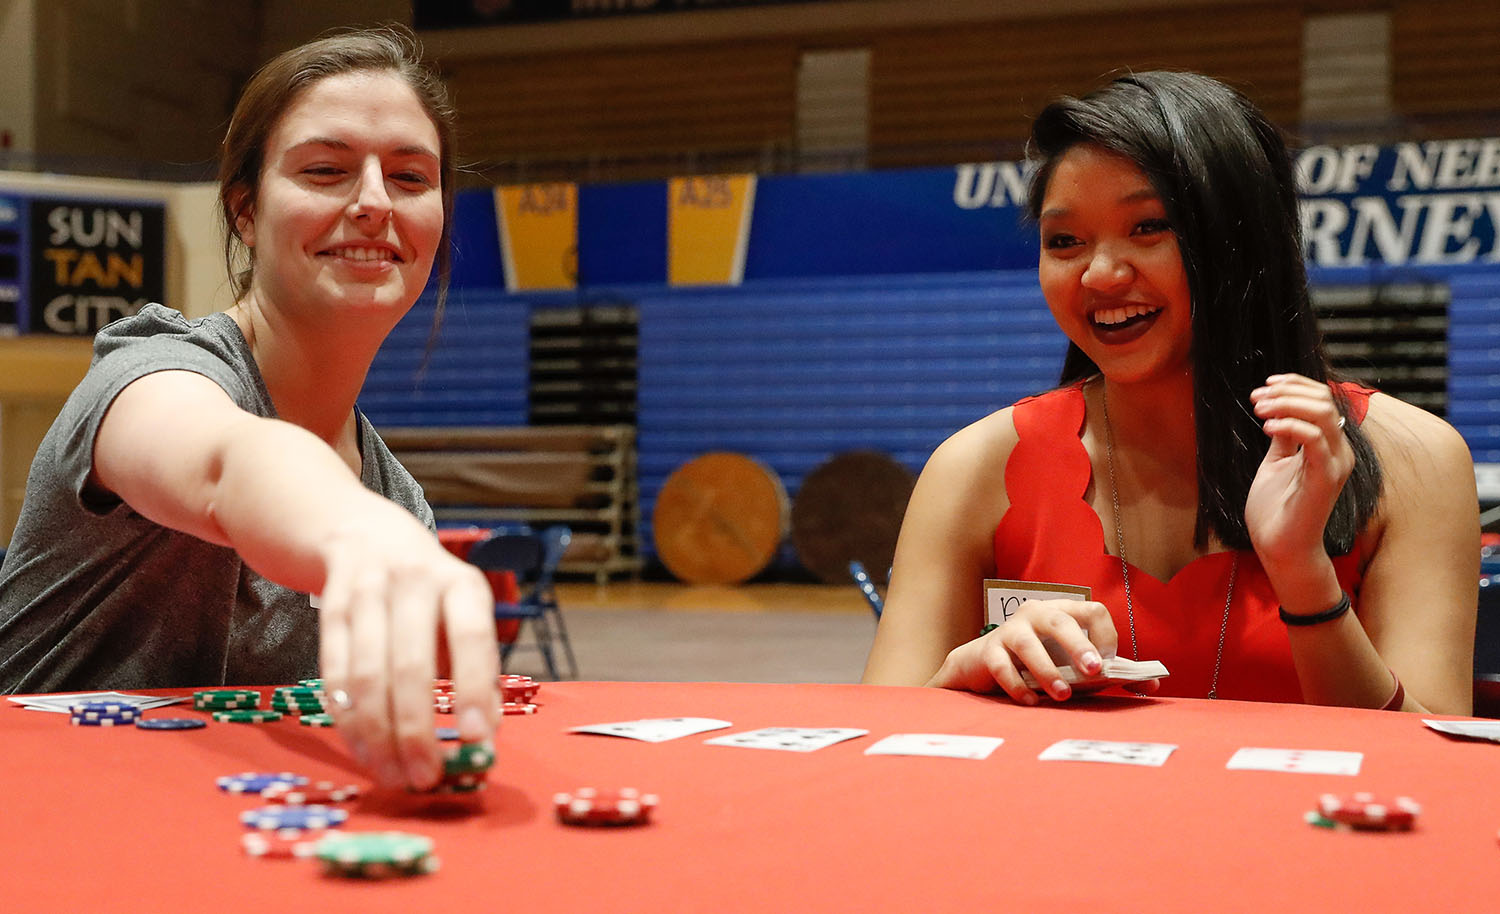 Alpha Phi's annual Red Dress Poker and Pitch Tournament is scheduled for March 5 in UNK's Health and Sports Center. The event raises money for the Alpha Phi Foundation, which supports women's heart health education and research. (Photos by Corbey R. Dorsey, UNK Communications)